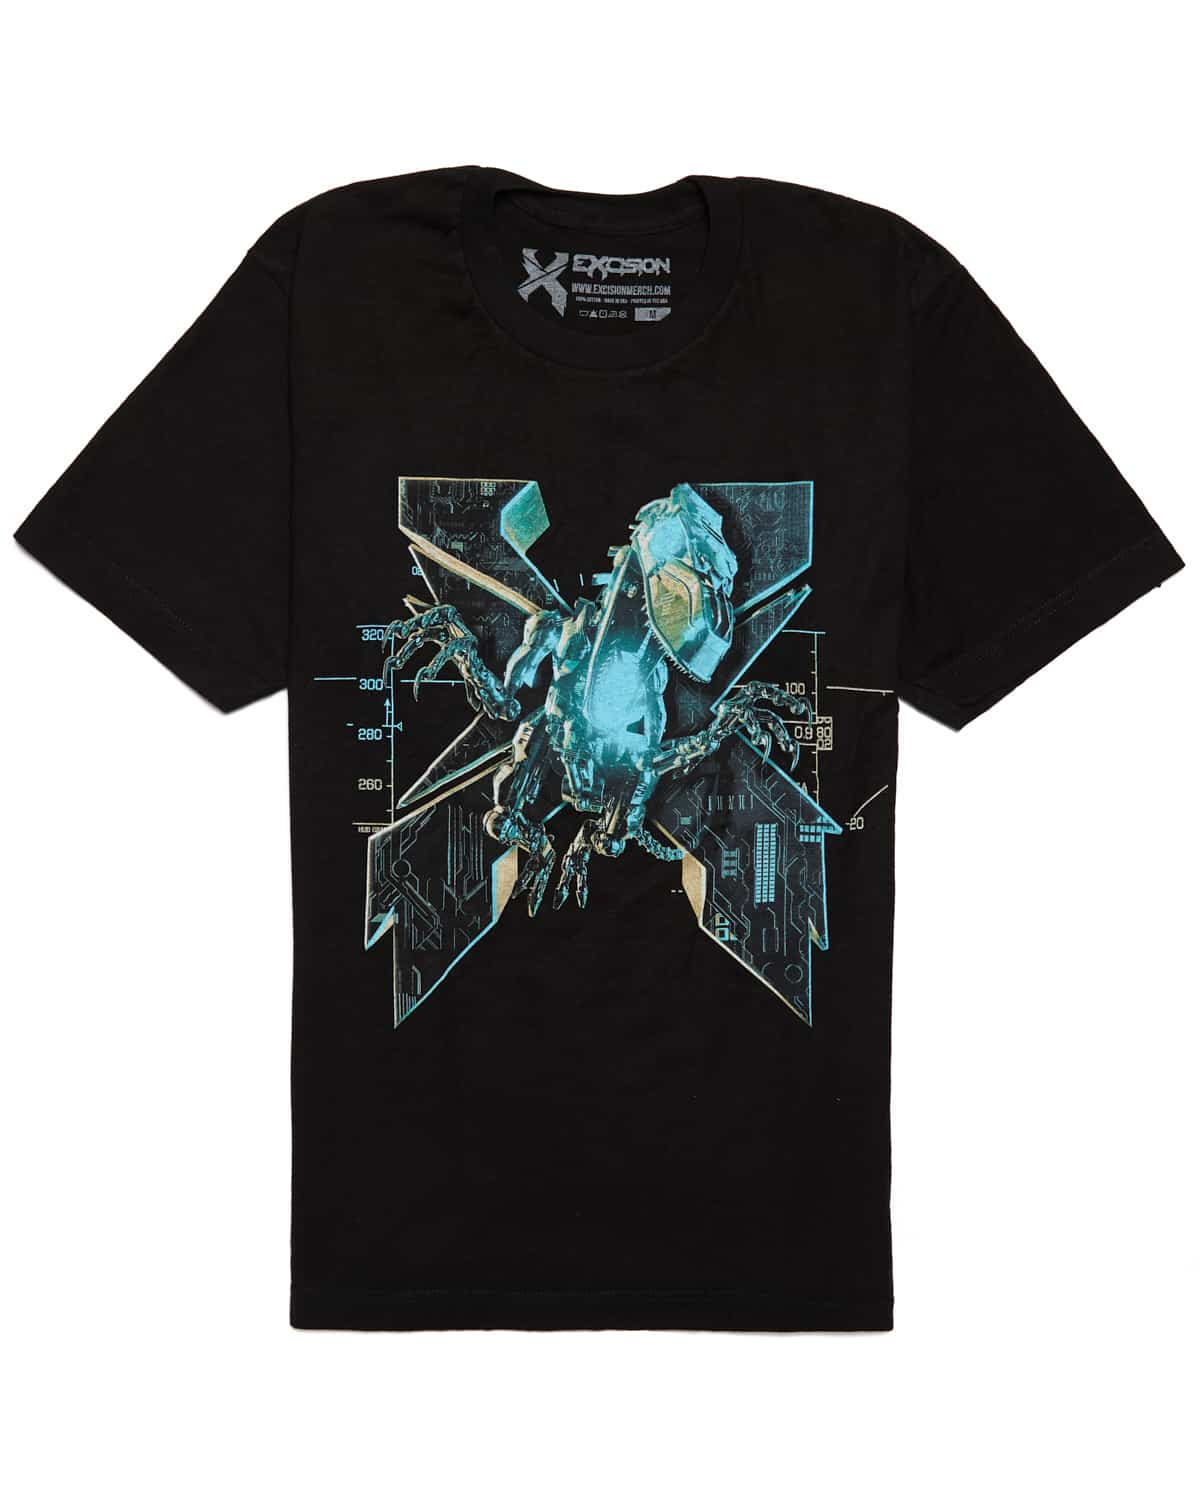 Excision 'Magnetite' Unisex T-Shirt - Black/Blue